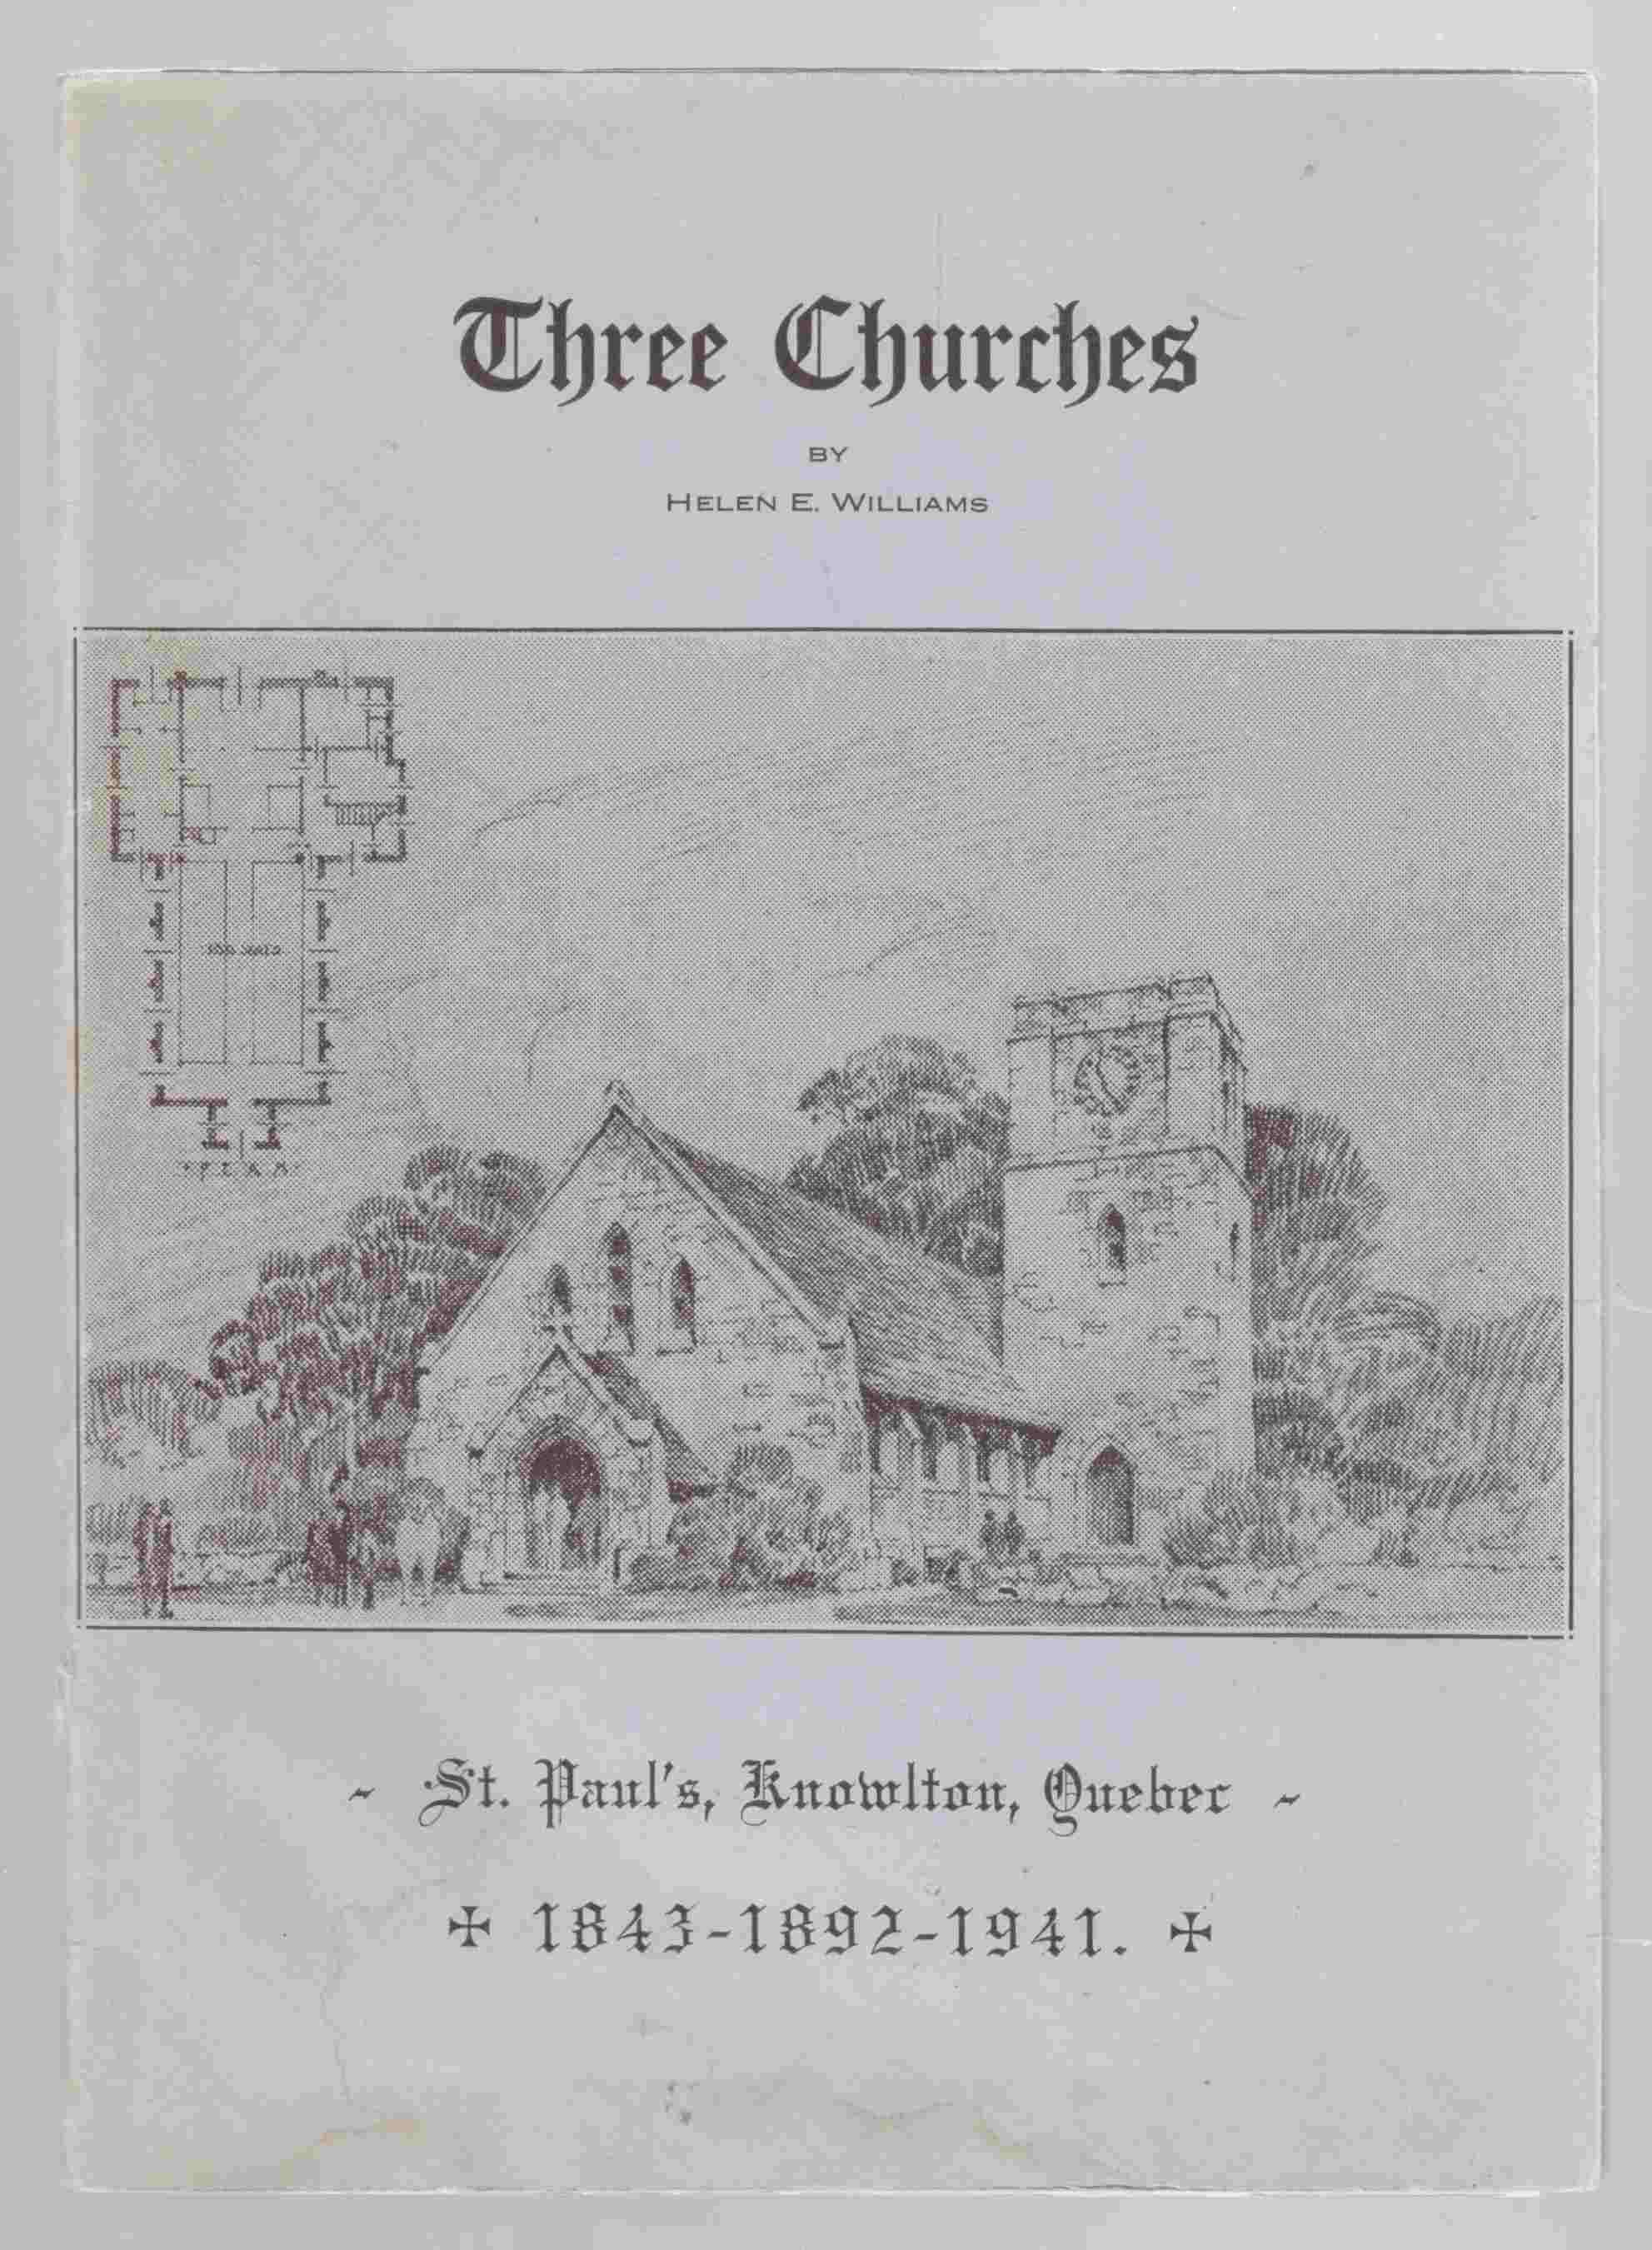 Image for Three Churches St. Paul's, Knowlton Quebec 1843-1892-1941